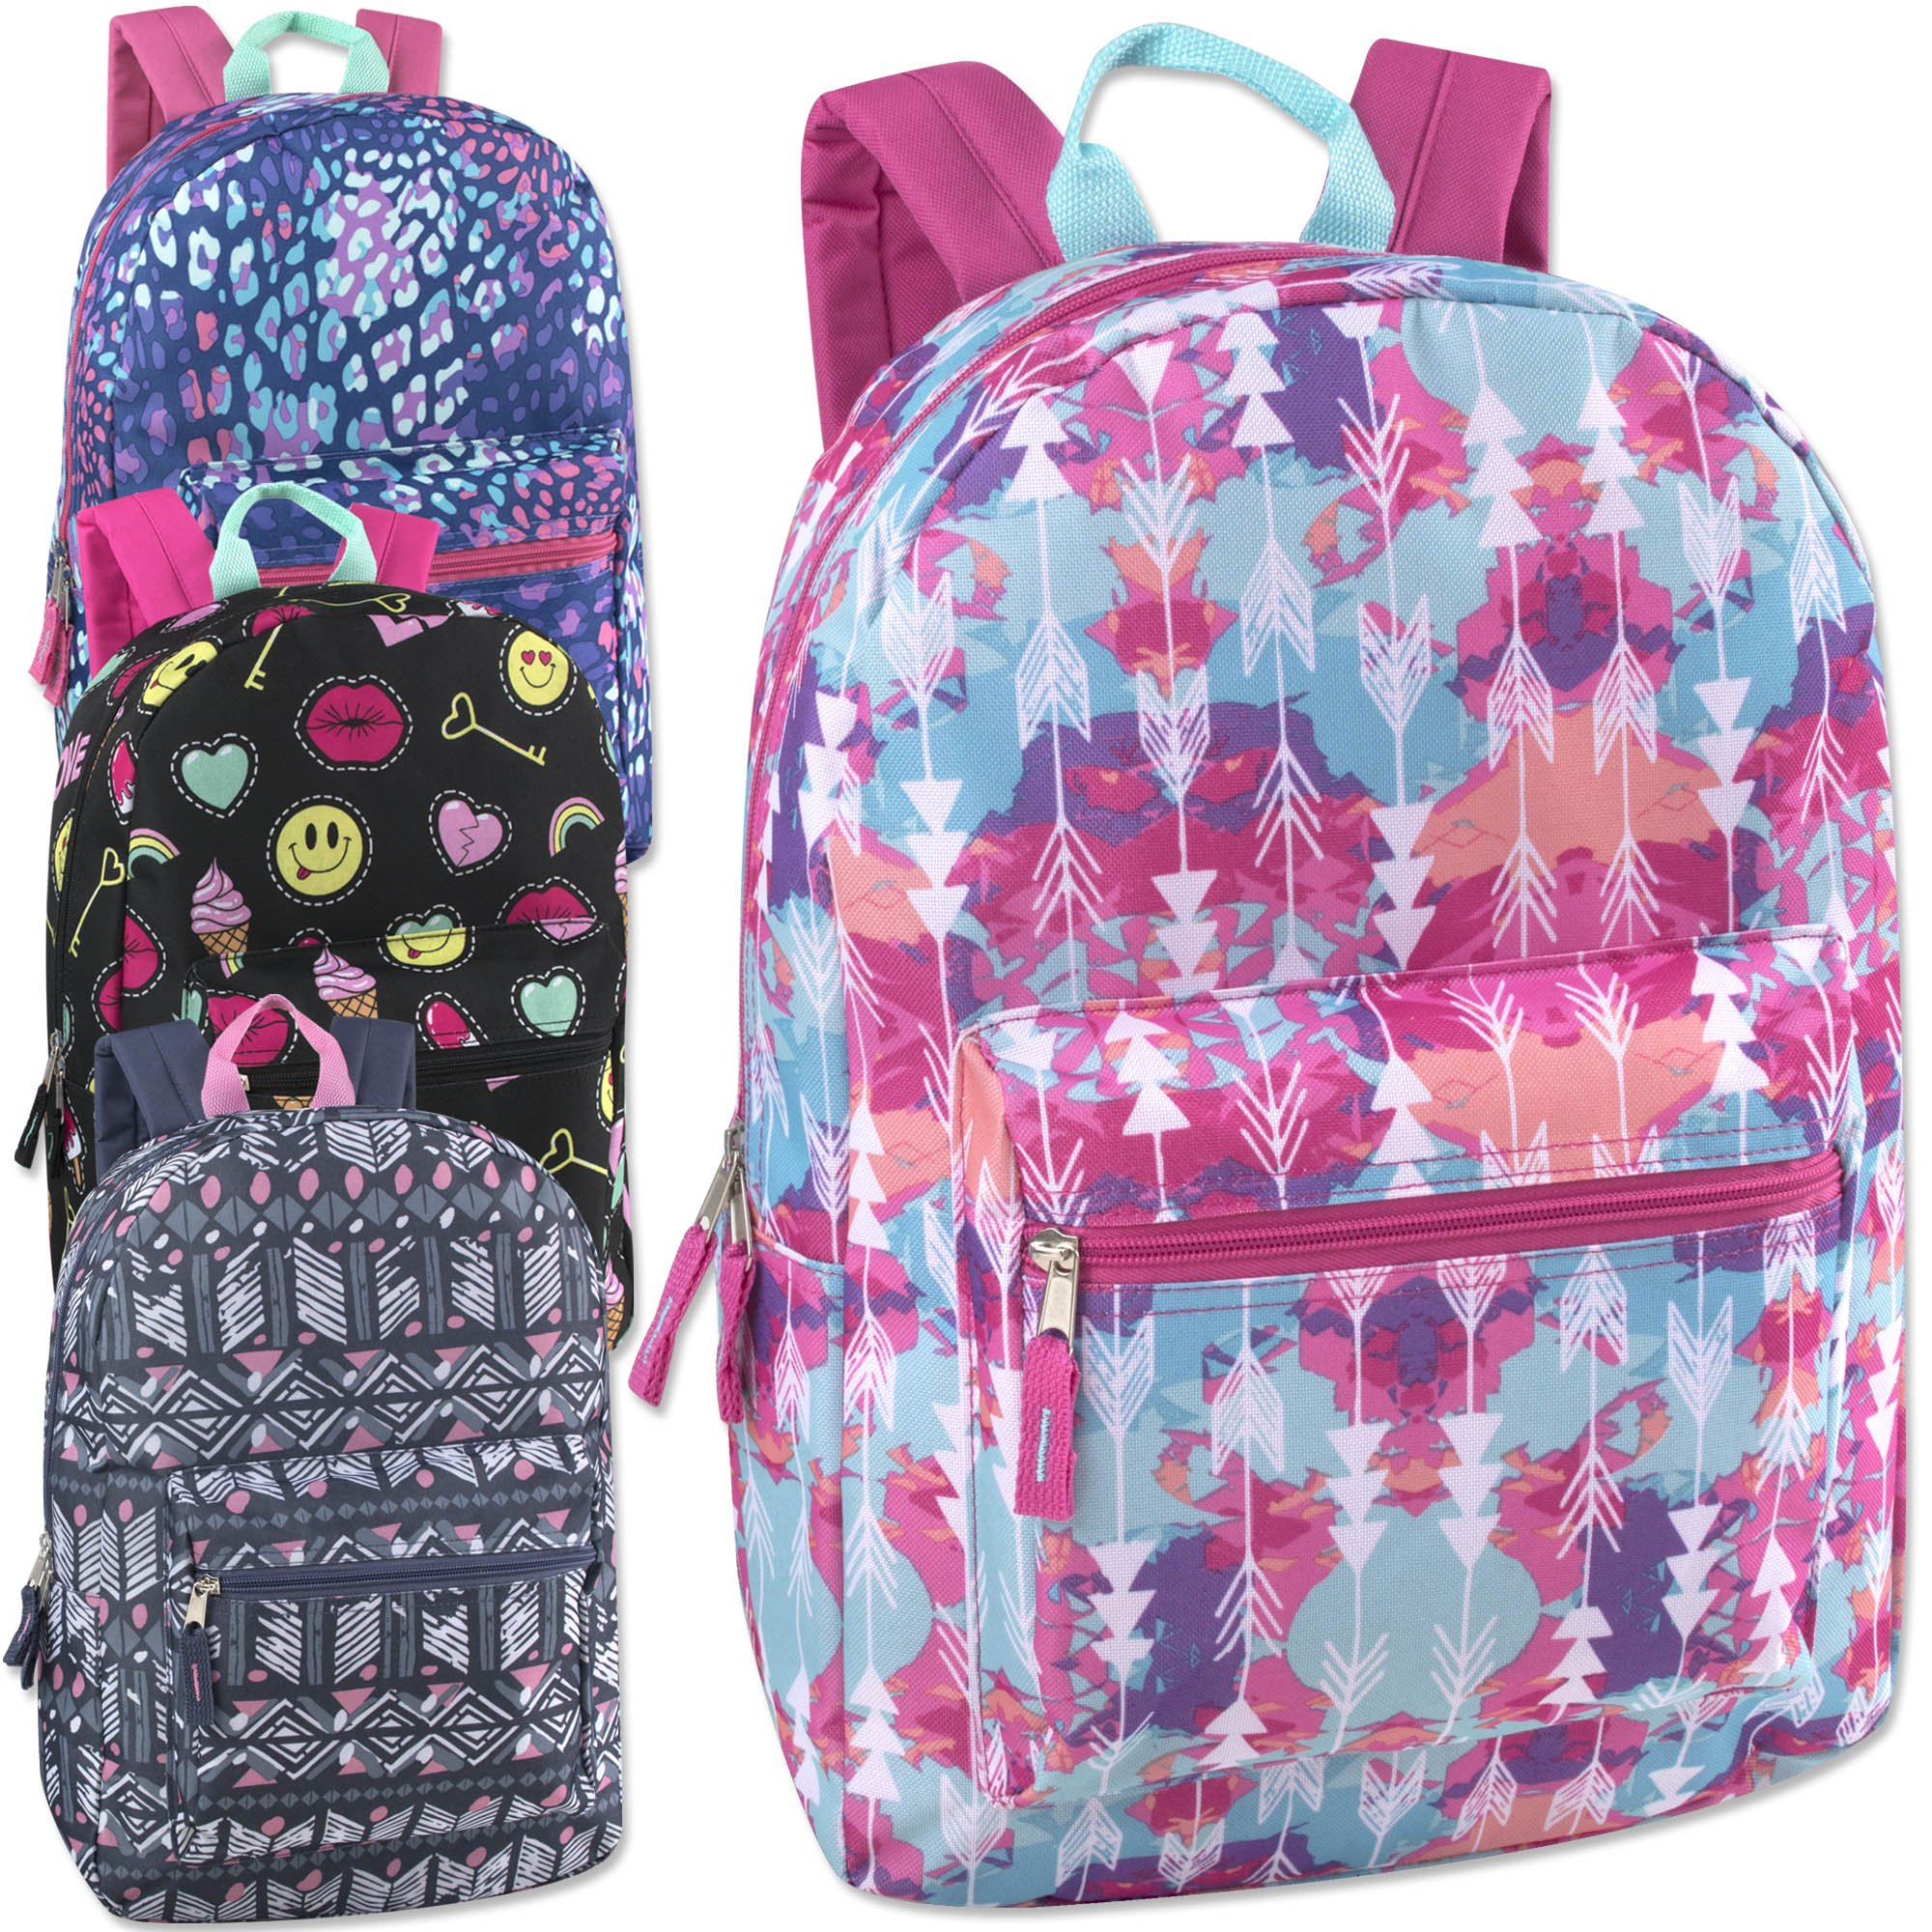 24 Pack of Wholesale 17 Inch Printed Bulk Backpacks For Kids - Boys and  Girls Bulk Wholesale Backpacks- Buy Online in Guernsey at Desertcart